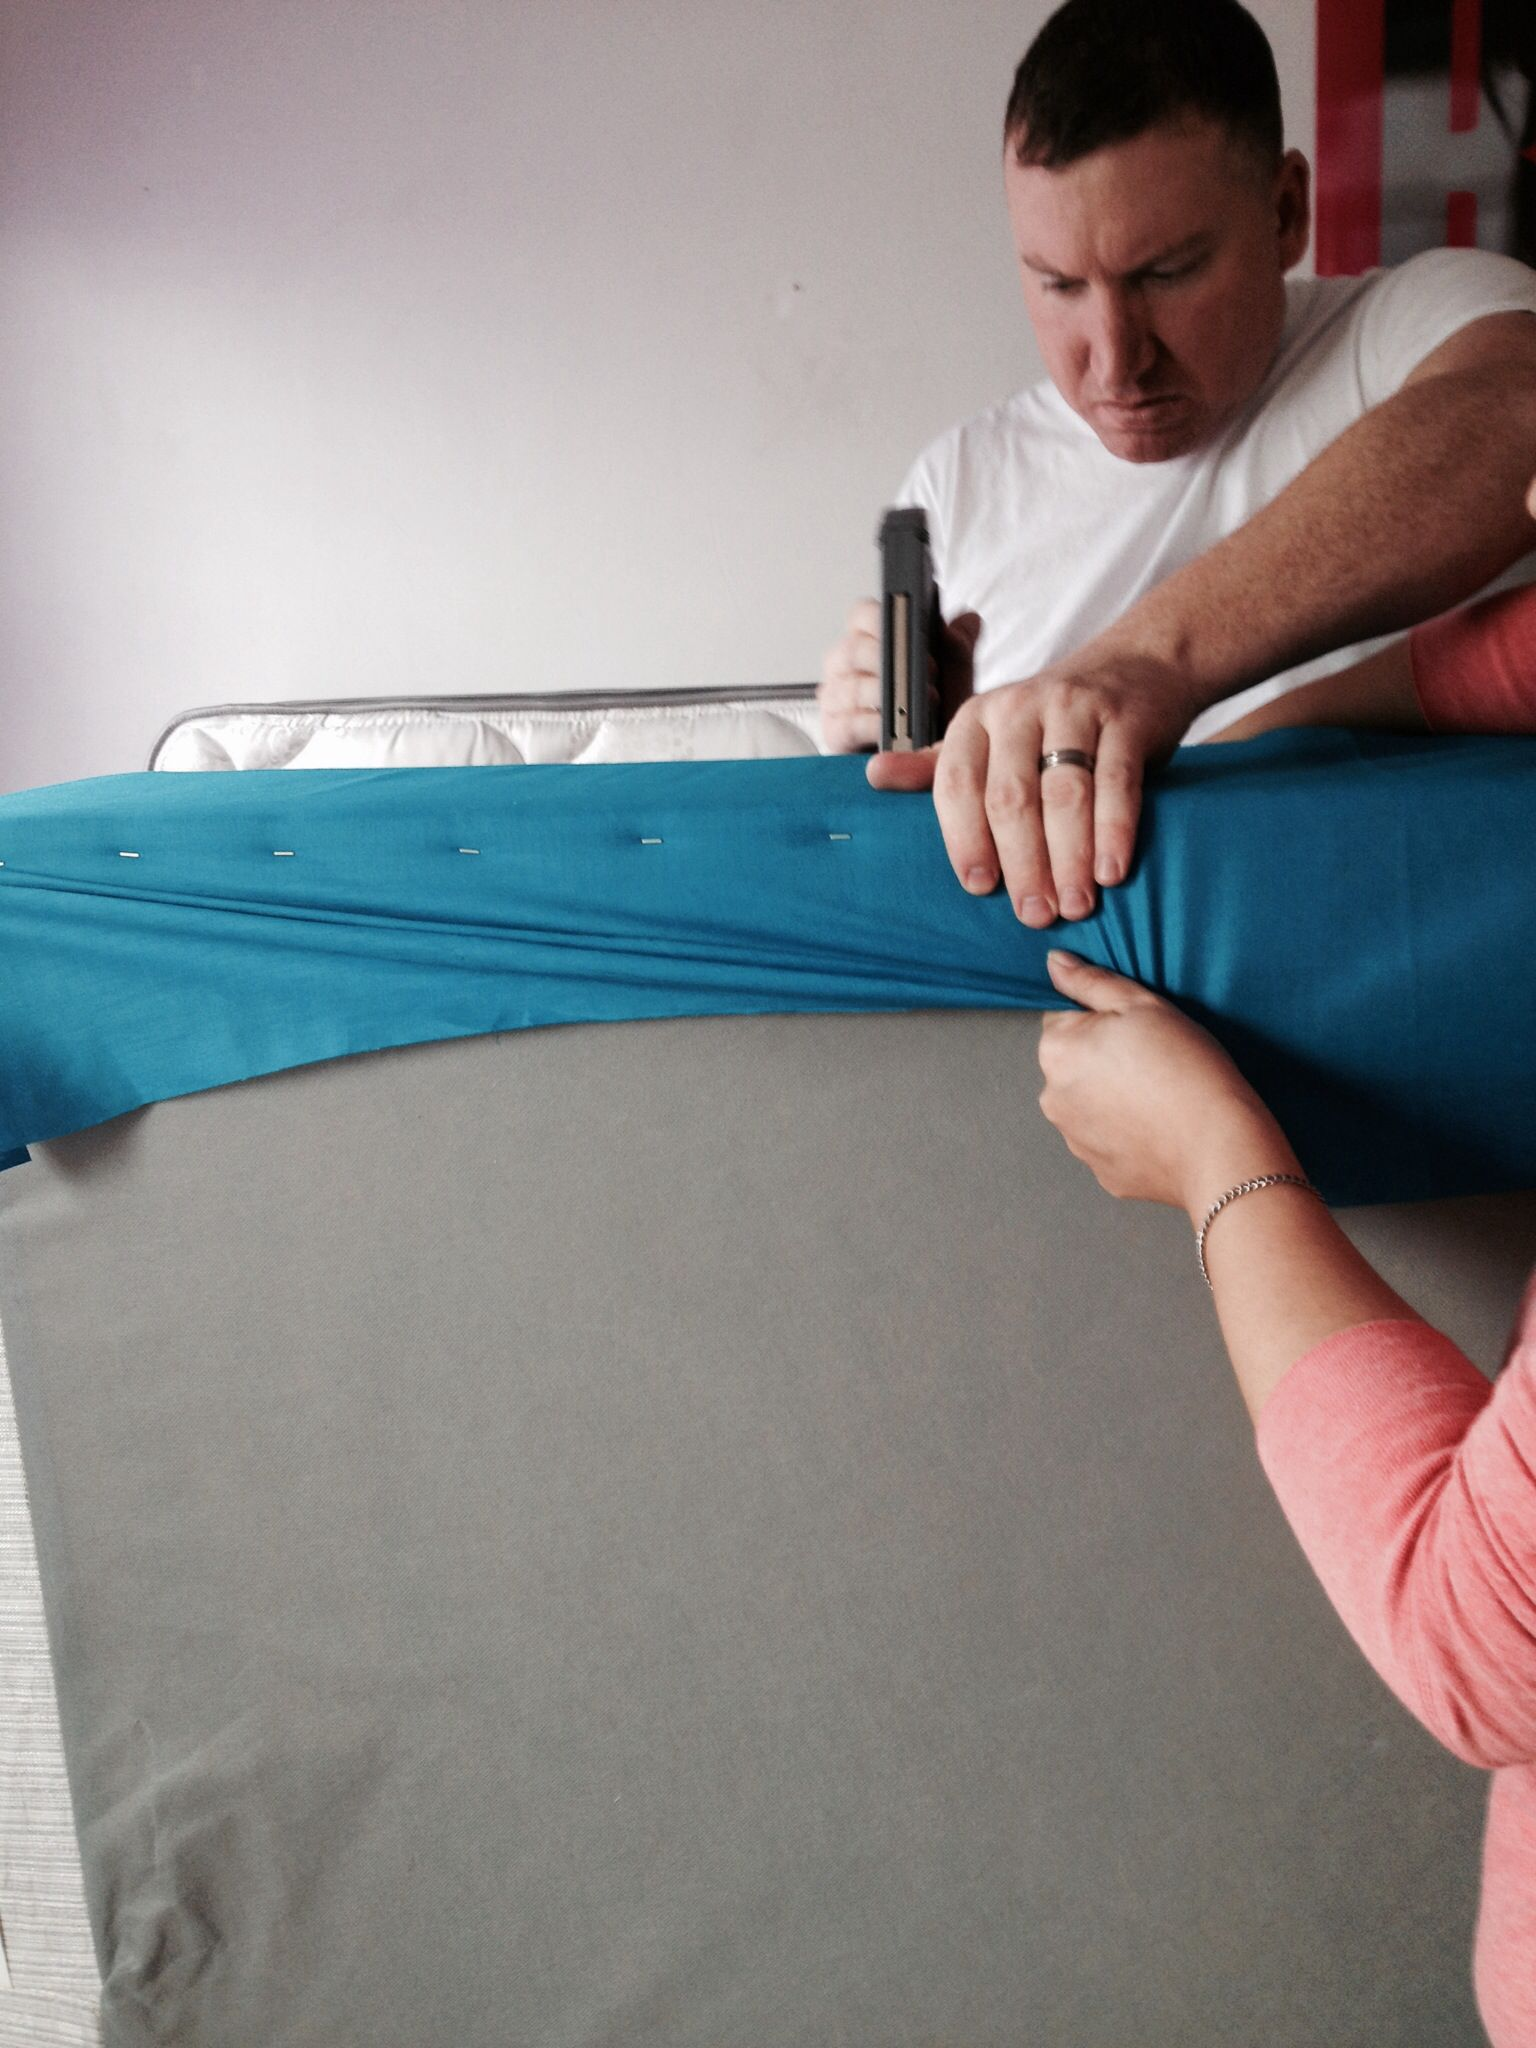 9 - This part is a two person job. Make sure you pull the fabric tight while the other person staples it.